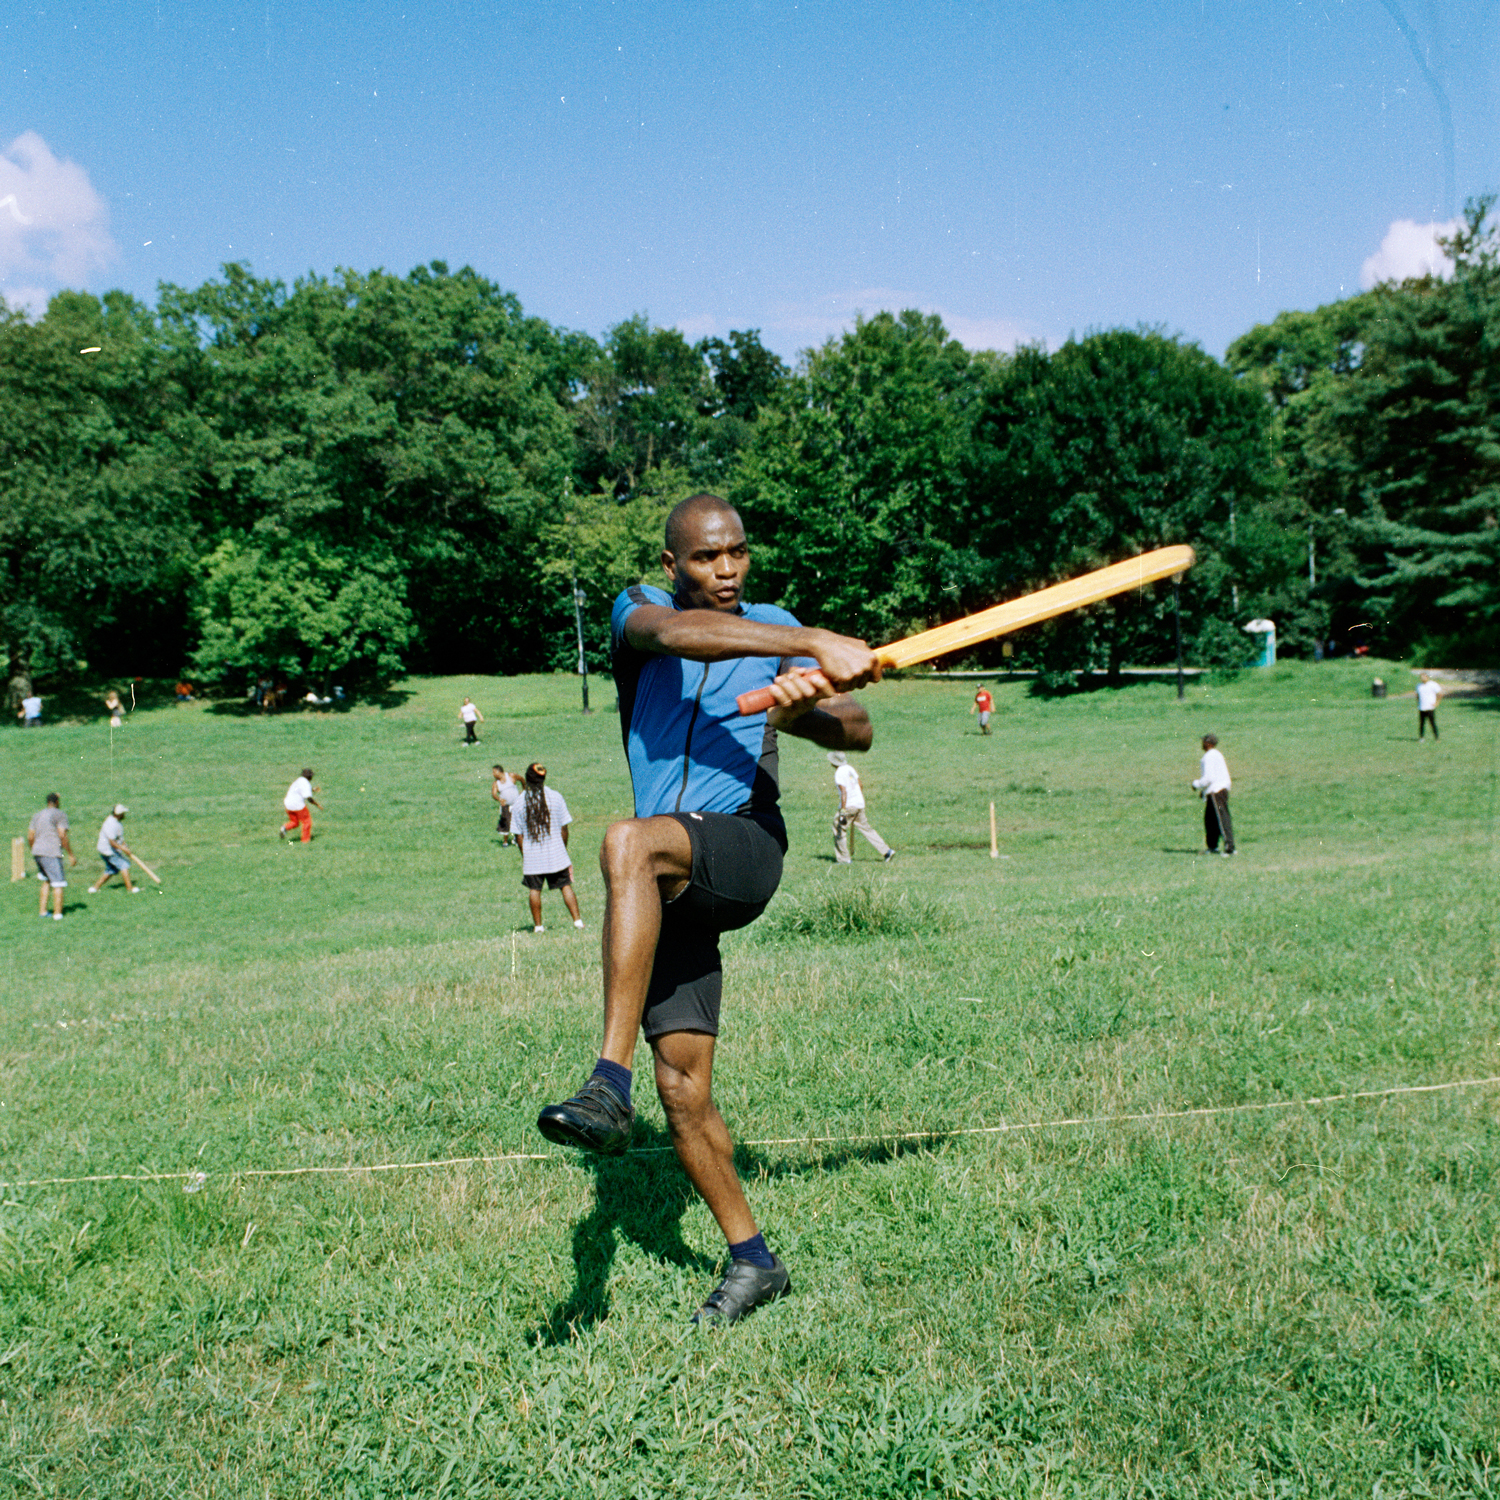 Cricket Player, Prospect Park